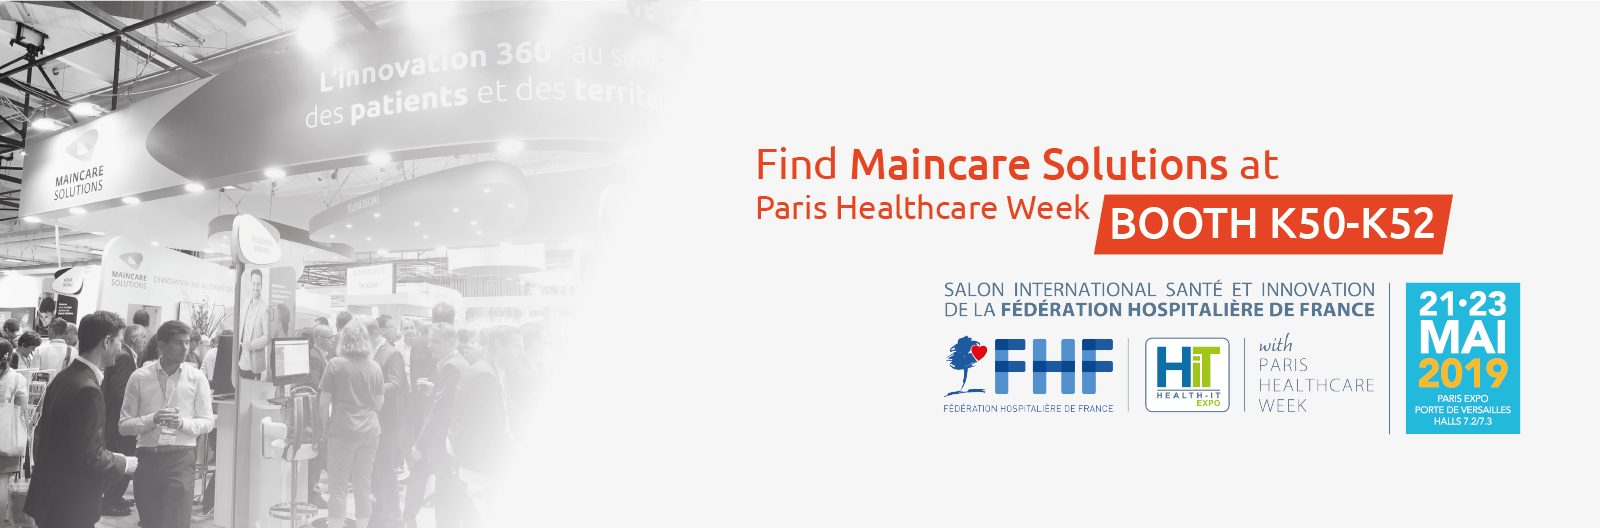 Join us at Paris Healthcare Week!